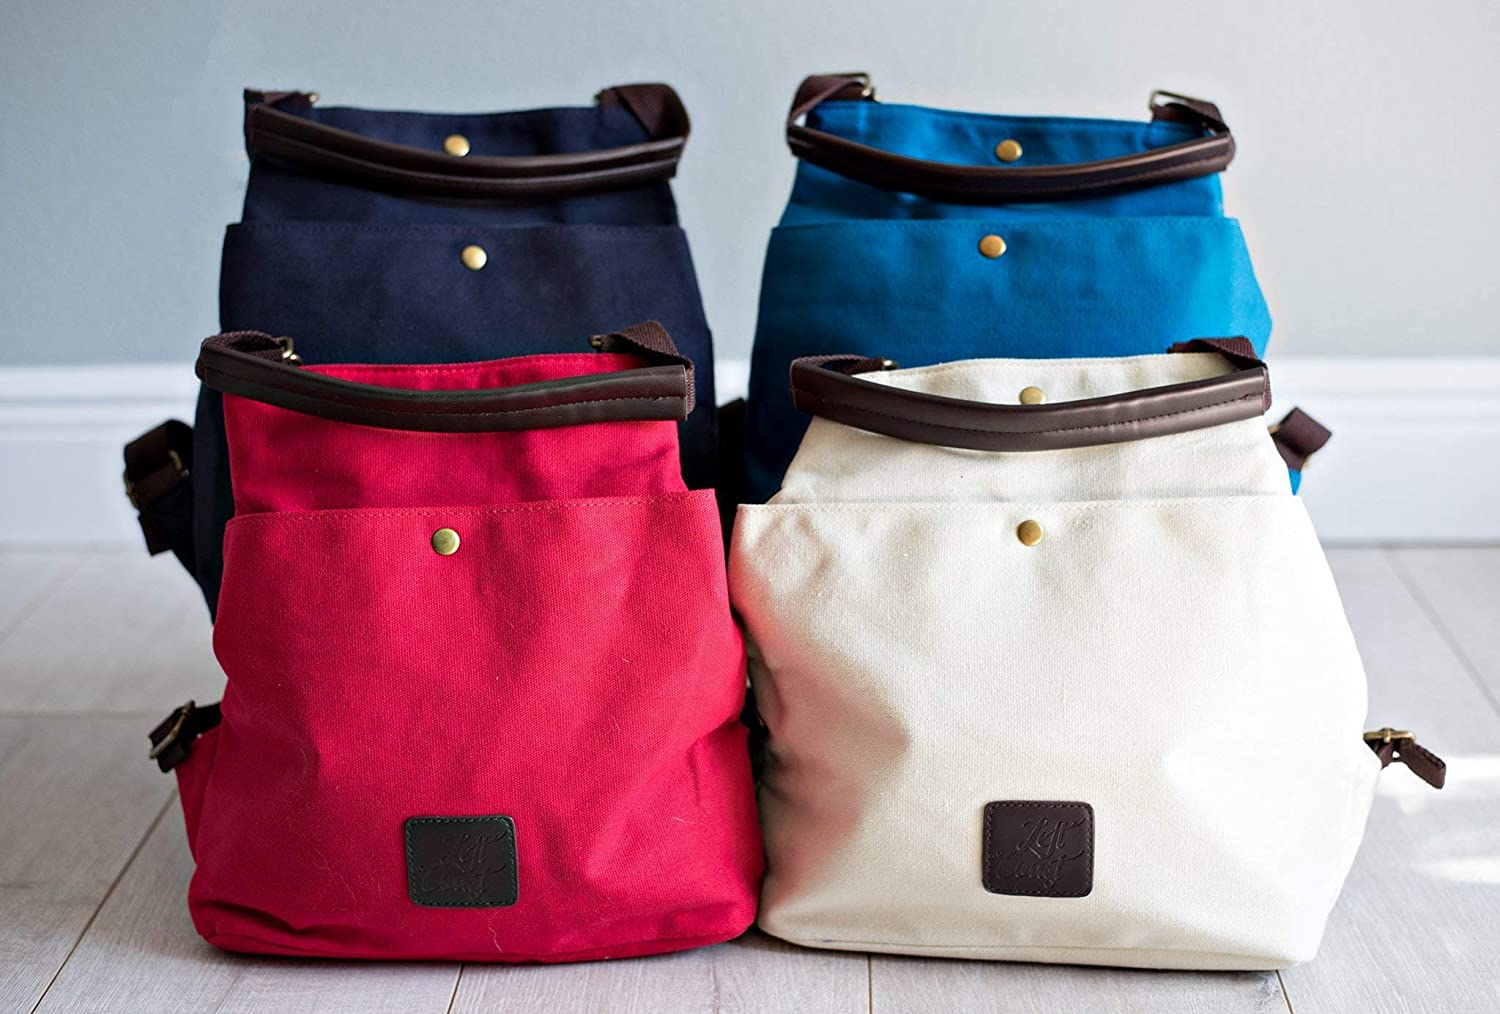 7887262f0f6278 Amazon.com: Backpack Convertible Tote Bag Canvas Vegan Laptop Tablet Purse  Beach Messenger Handbag Luggage Carryall Grad Gift Her Blue Red Navy White:  ...